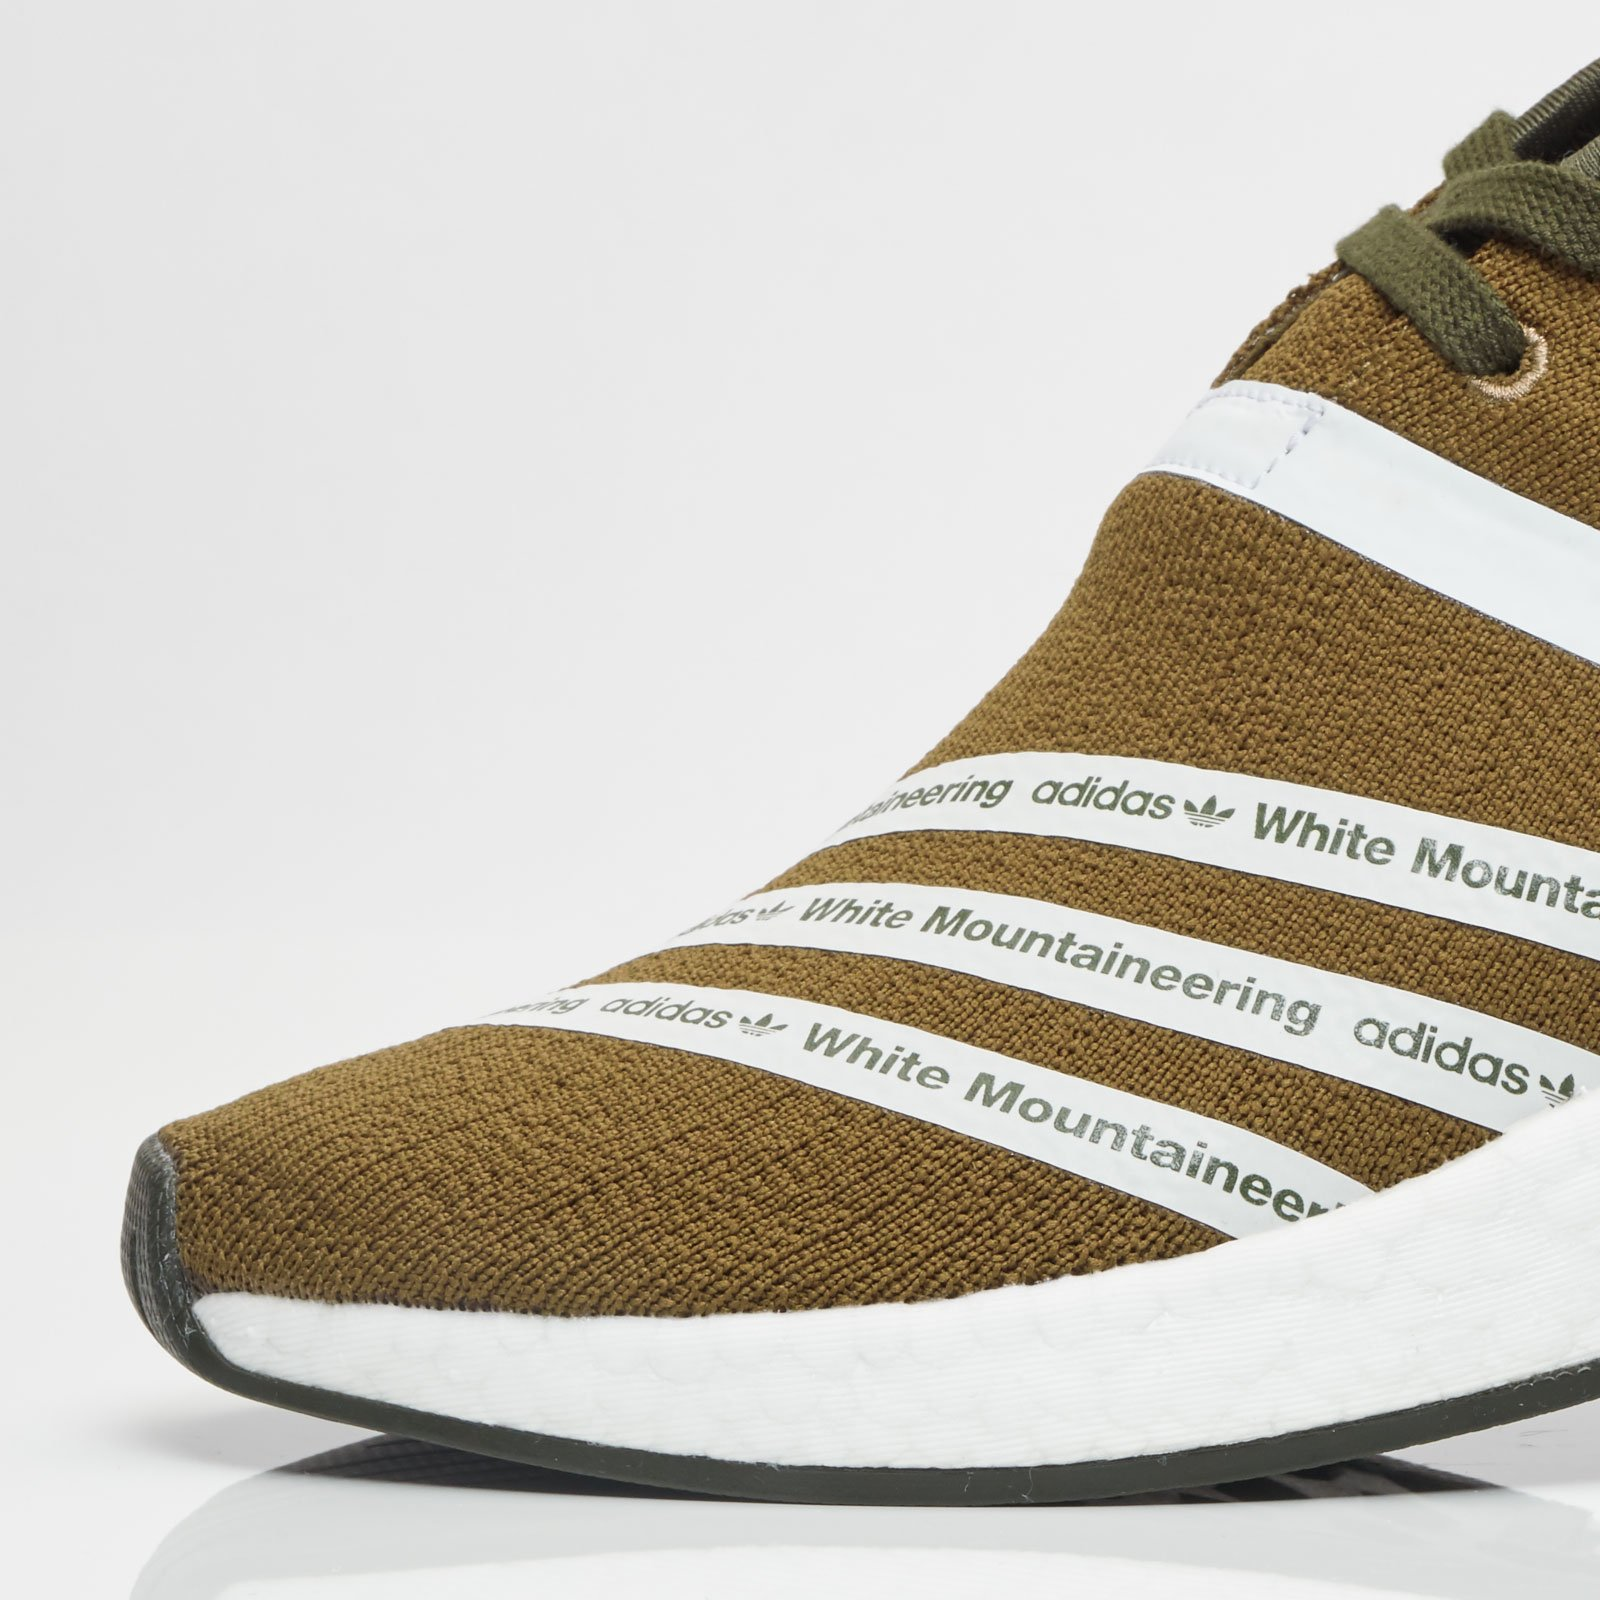 47103f46e adidas NMD R2 PK by White Mountaineering - Cg3649 - Sneakersnstuff ...